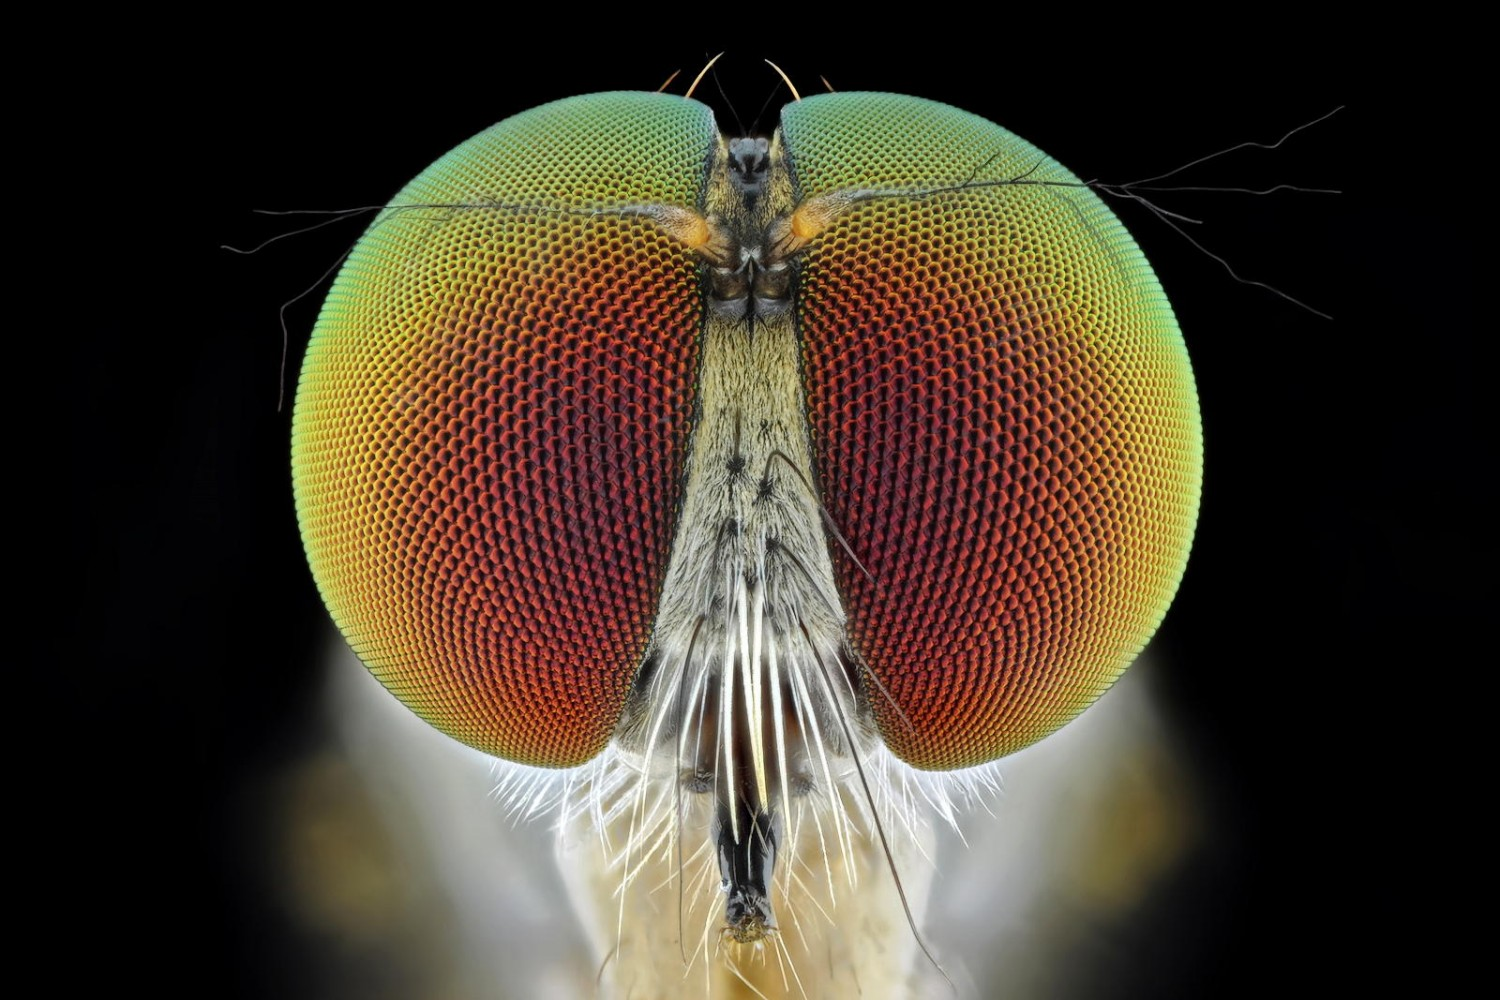 22 Insects Too Crafty To Be Caught By The Naked Eye